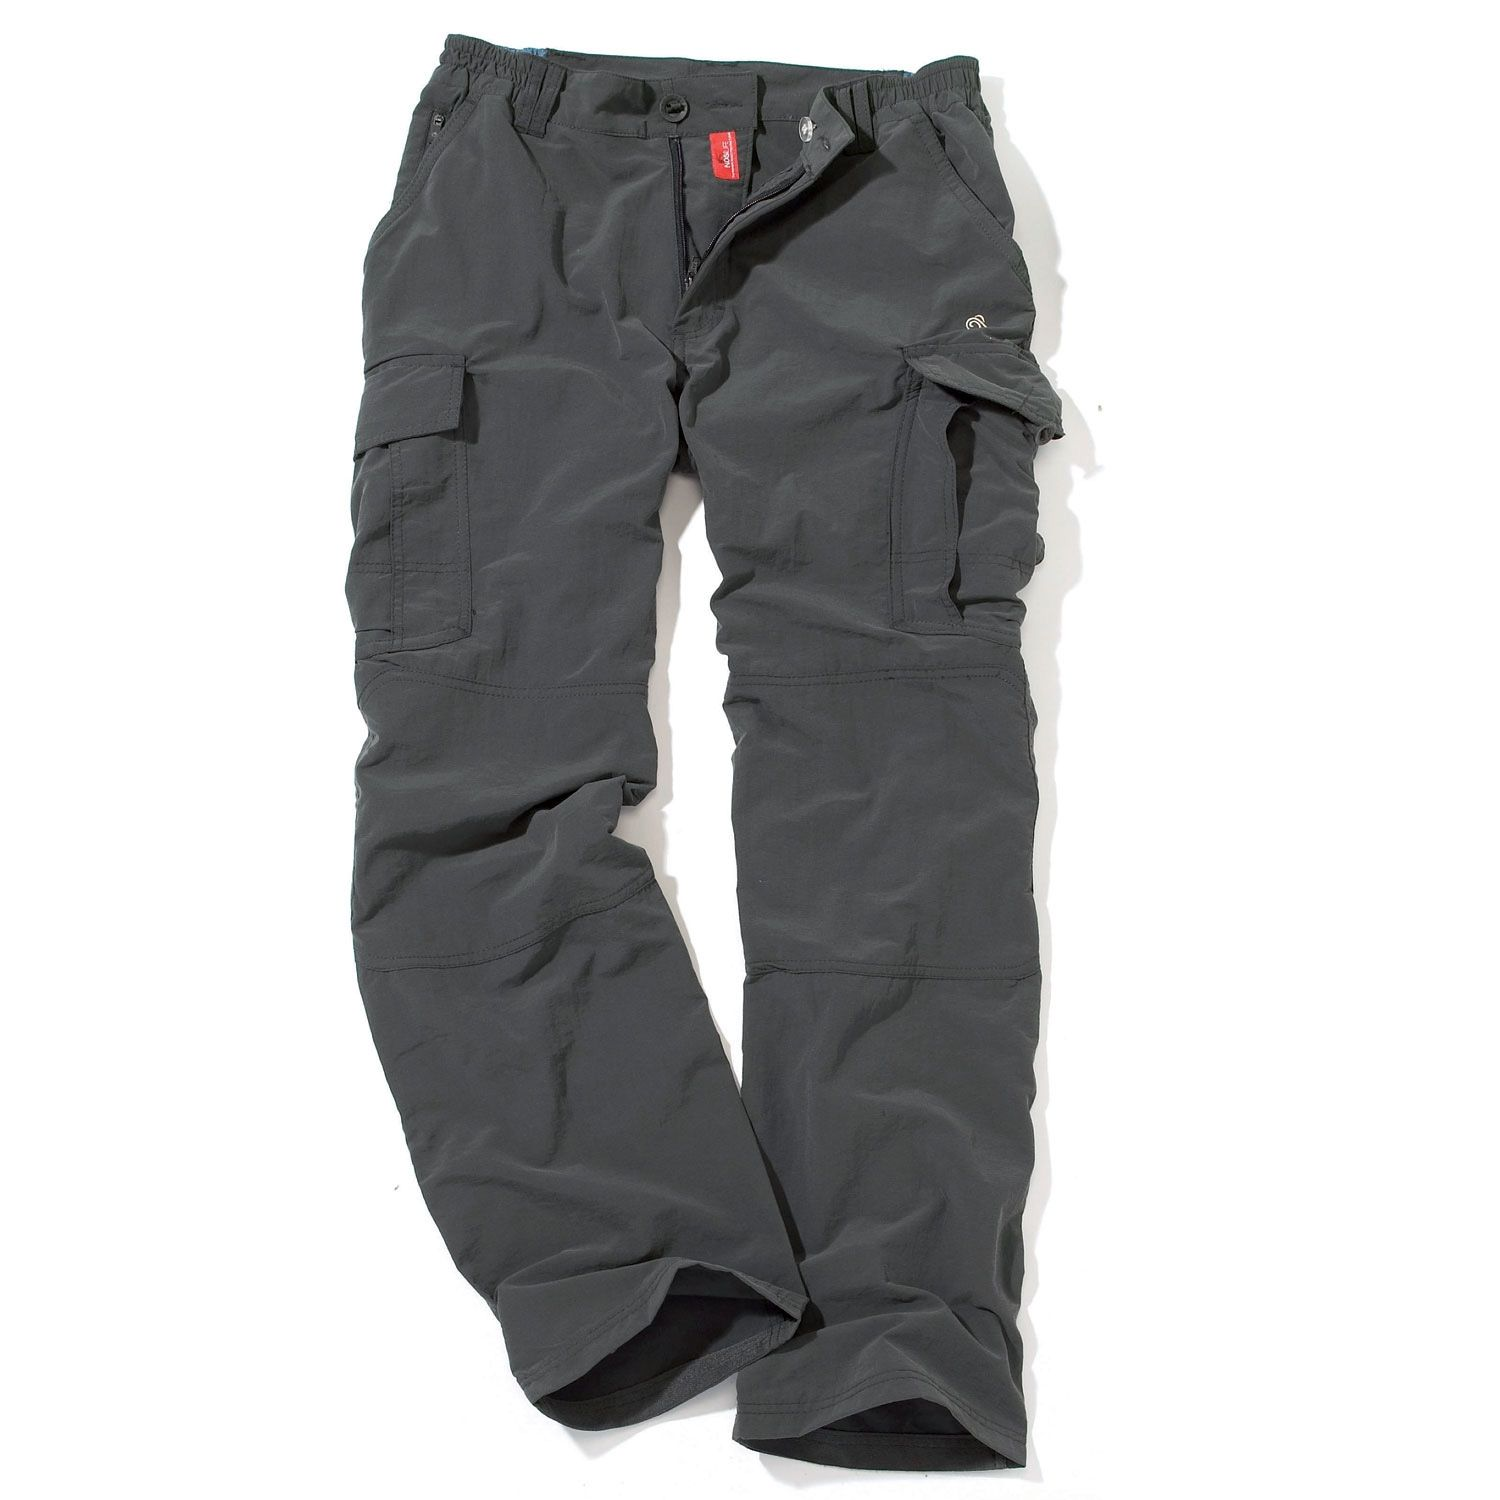 Craghoppers Black Pepper Nosilife Cargo Trousers